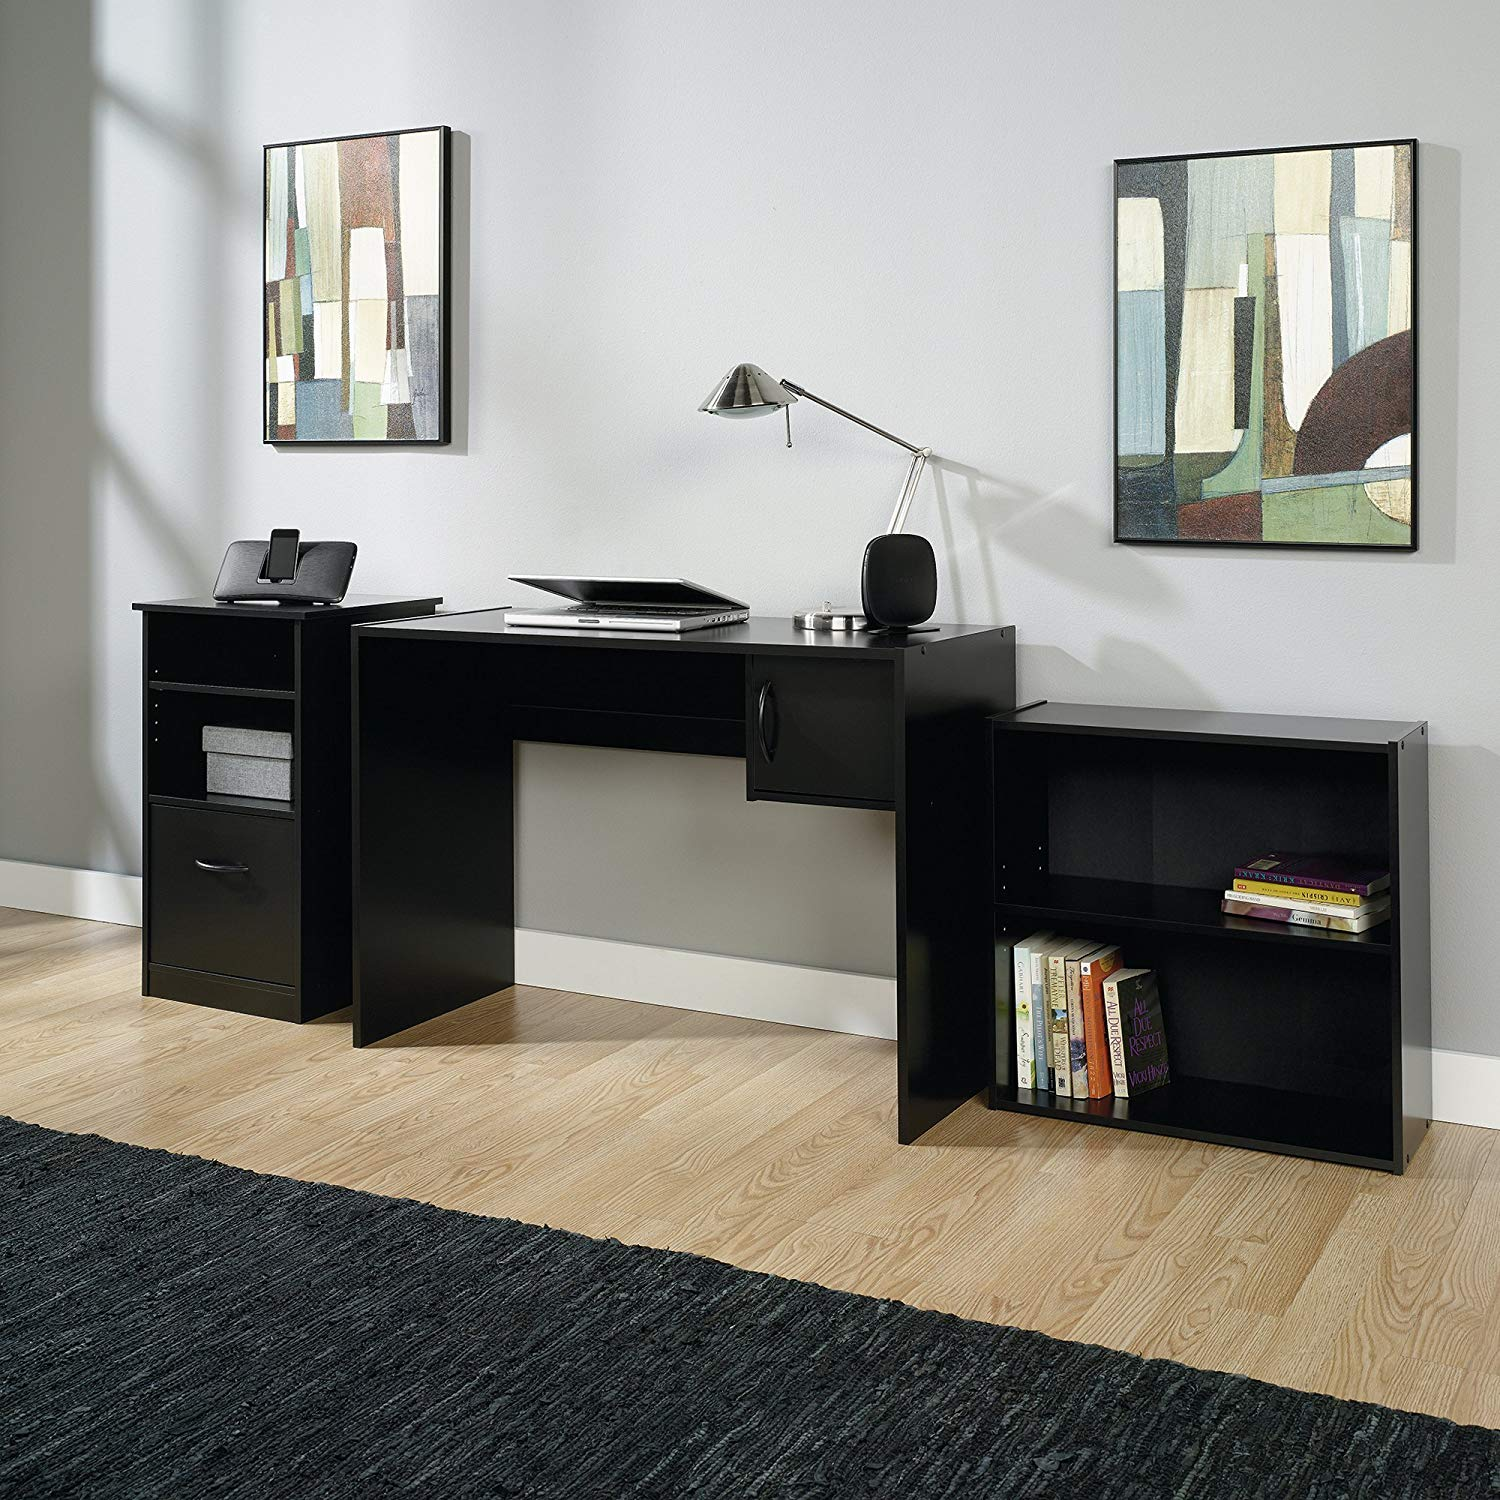 3-Piece Office Set, Black Finish, 1 Adjustable Shelf, Storage Cabinet, File Drawer, Bookcase, Office, Home, Furniture, Bundle with Our Expert Guide with Tips for Home Arrangement